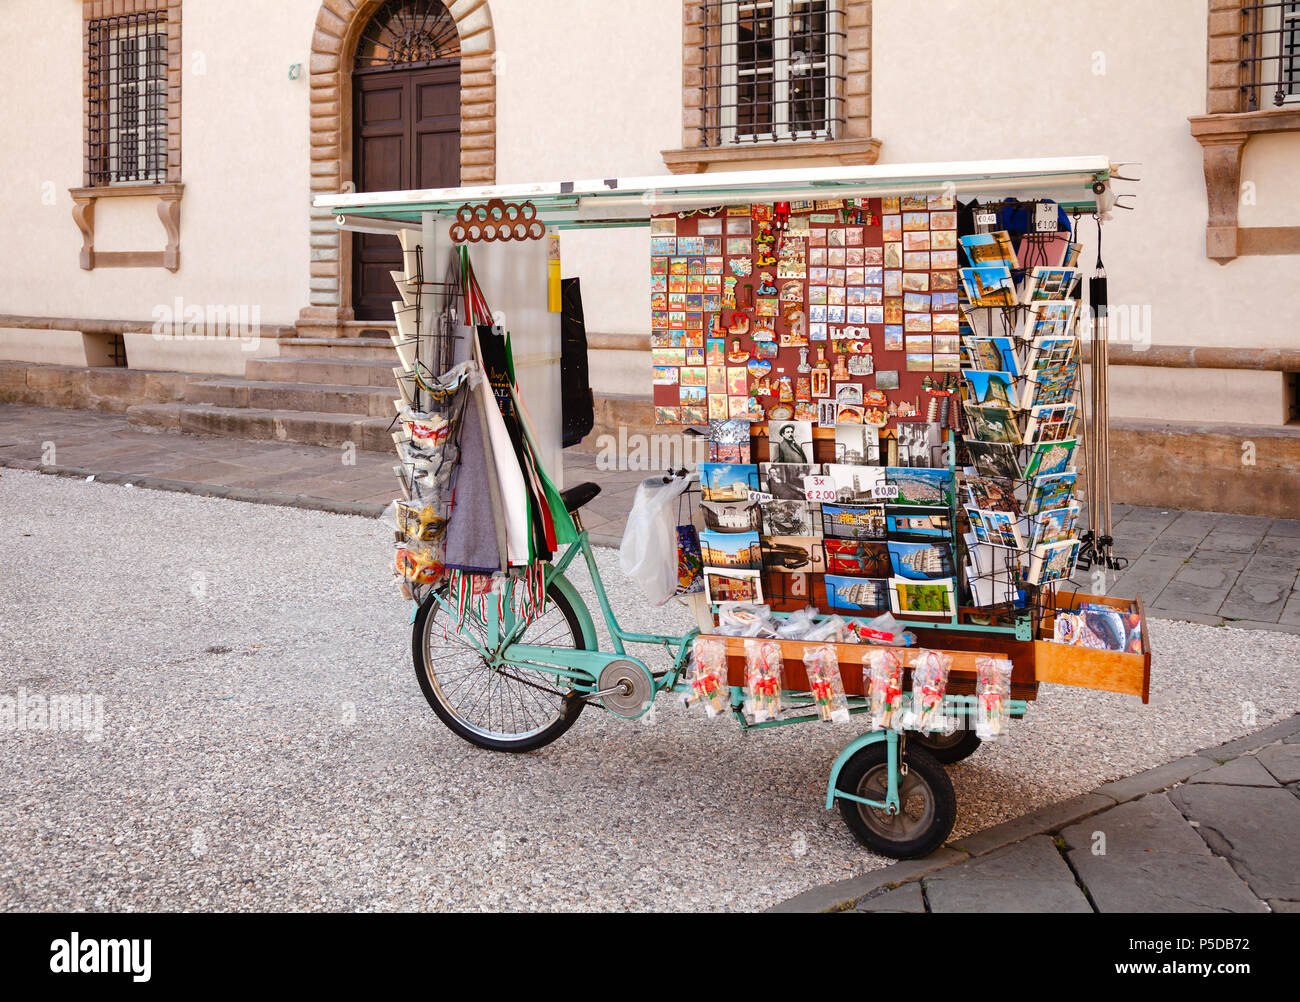 LUCCA, ITALY - MAY 31, 2018: Souvenir Stall on a Bicycle with fridge magnets  souvenirs and postcards for sale on a street - Stock Image